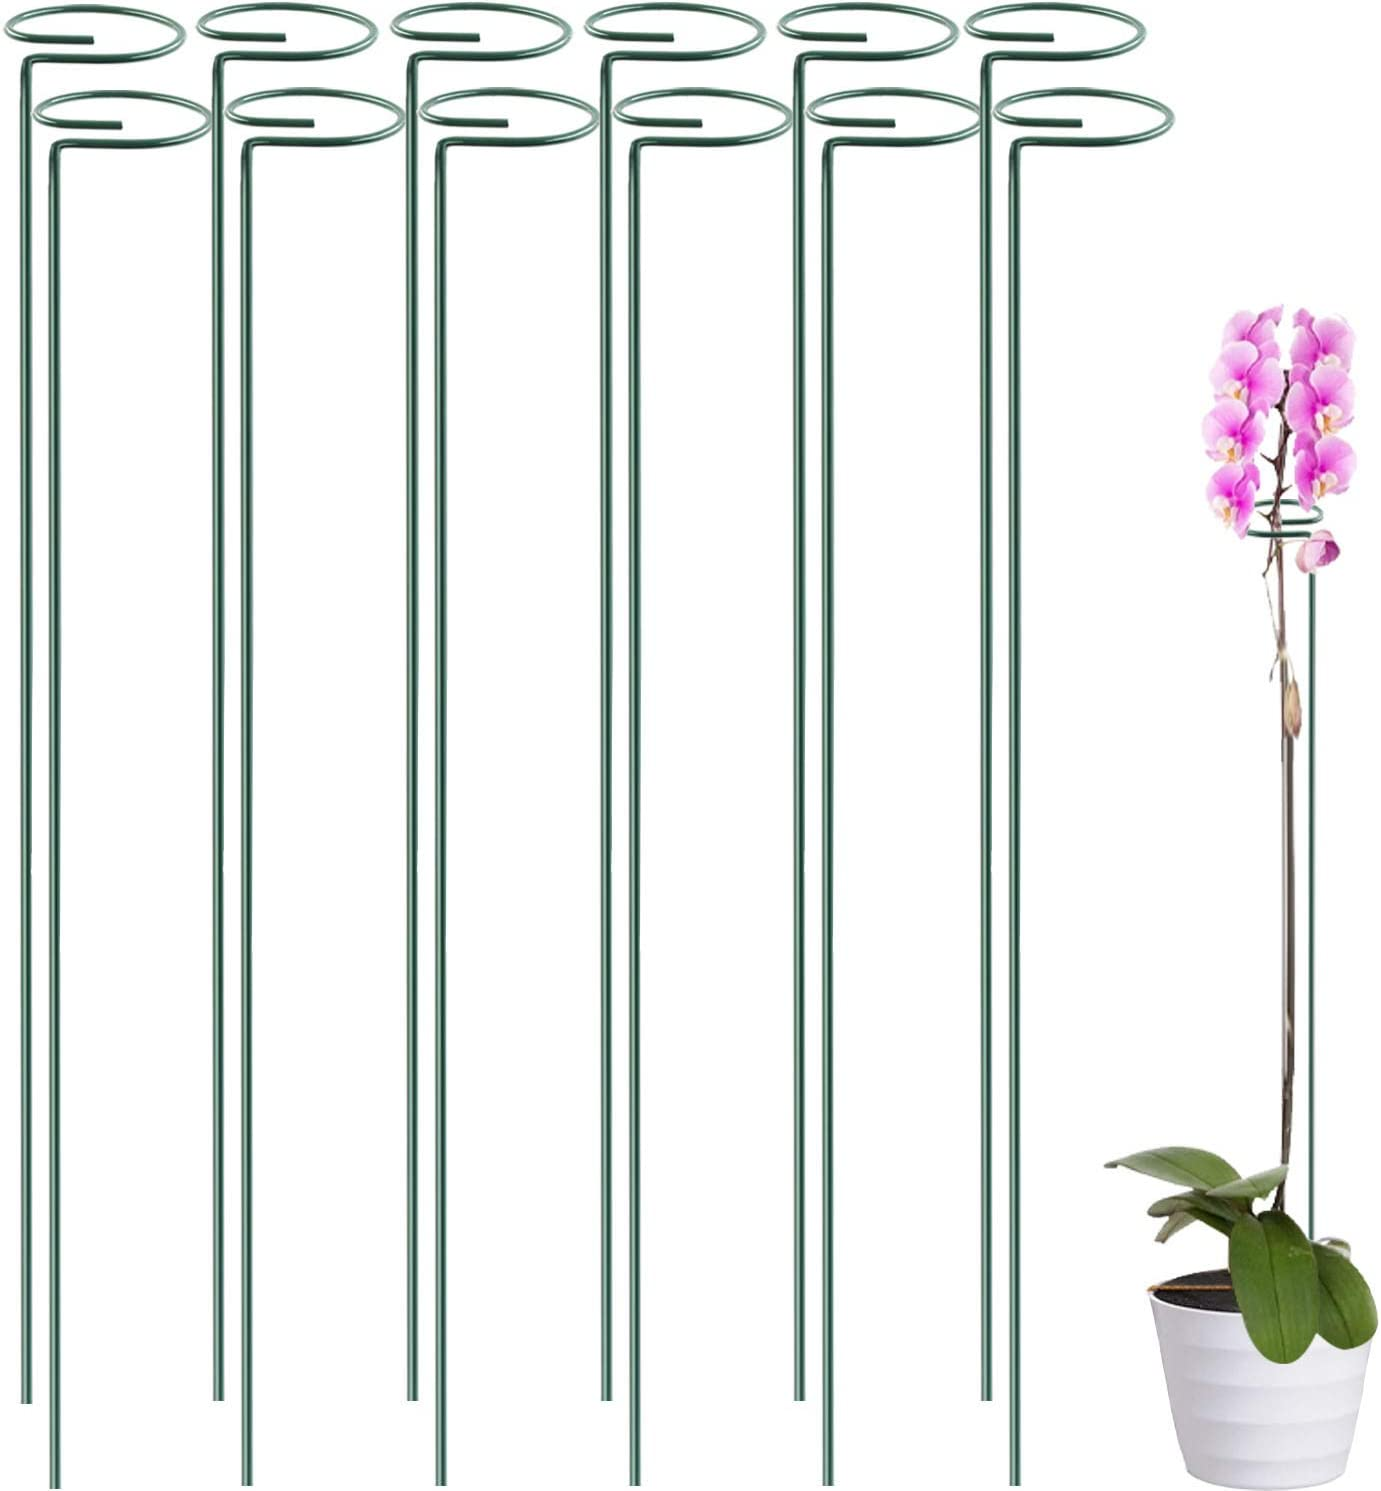 12 Pack 36 inch Plant Support Stakes,Single Stem Plant Support Stake Single Plant Stem Garden Flower Support Stake Steel Plant Cage Support Ring for Gladiolus Iris Dahlia Amaryllis Rose Lily Peony